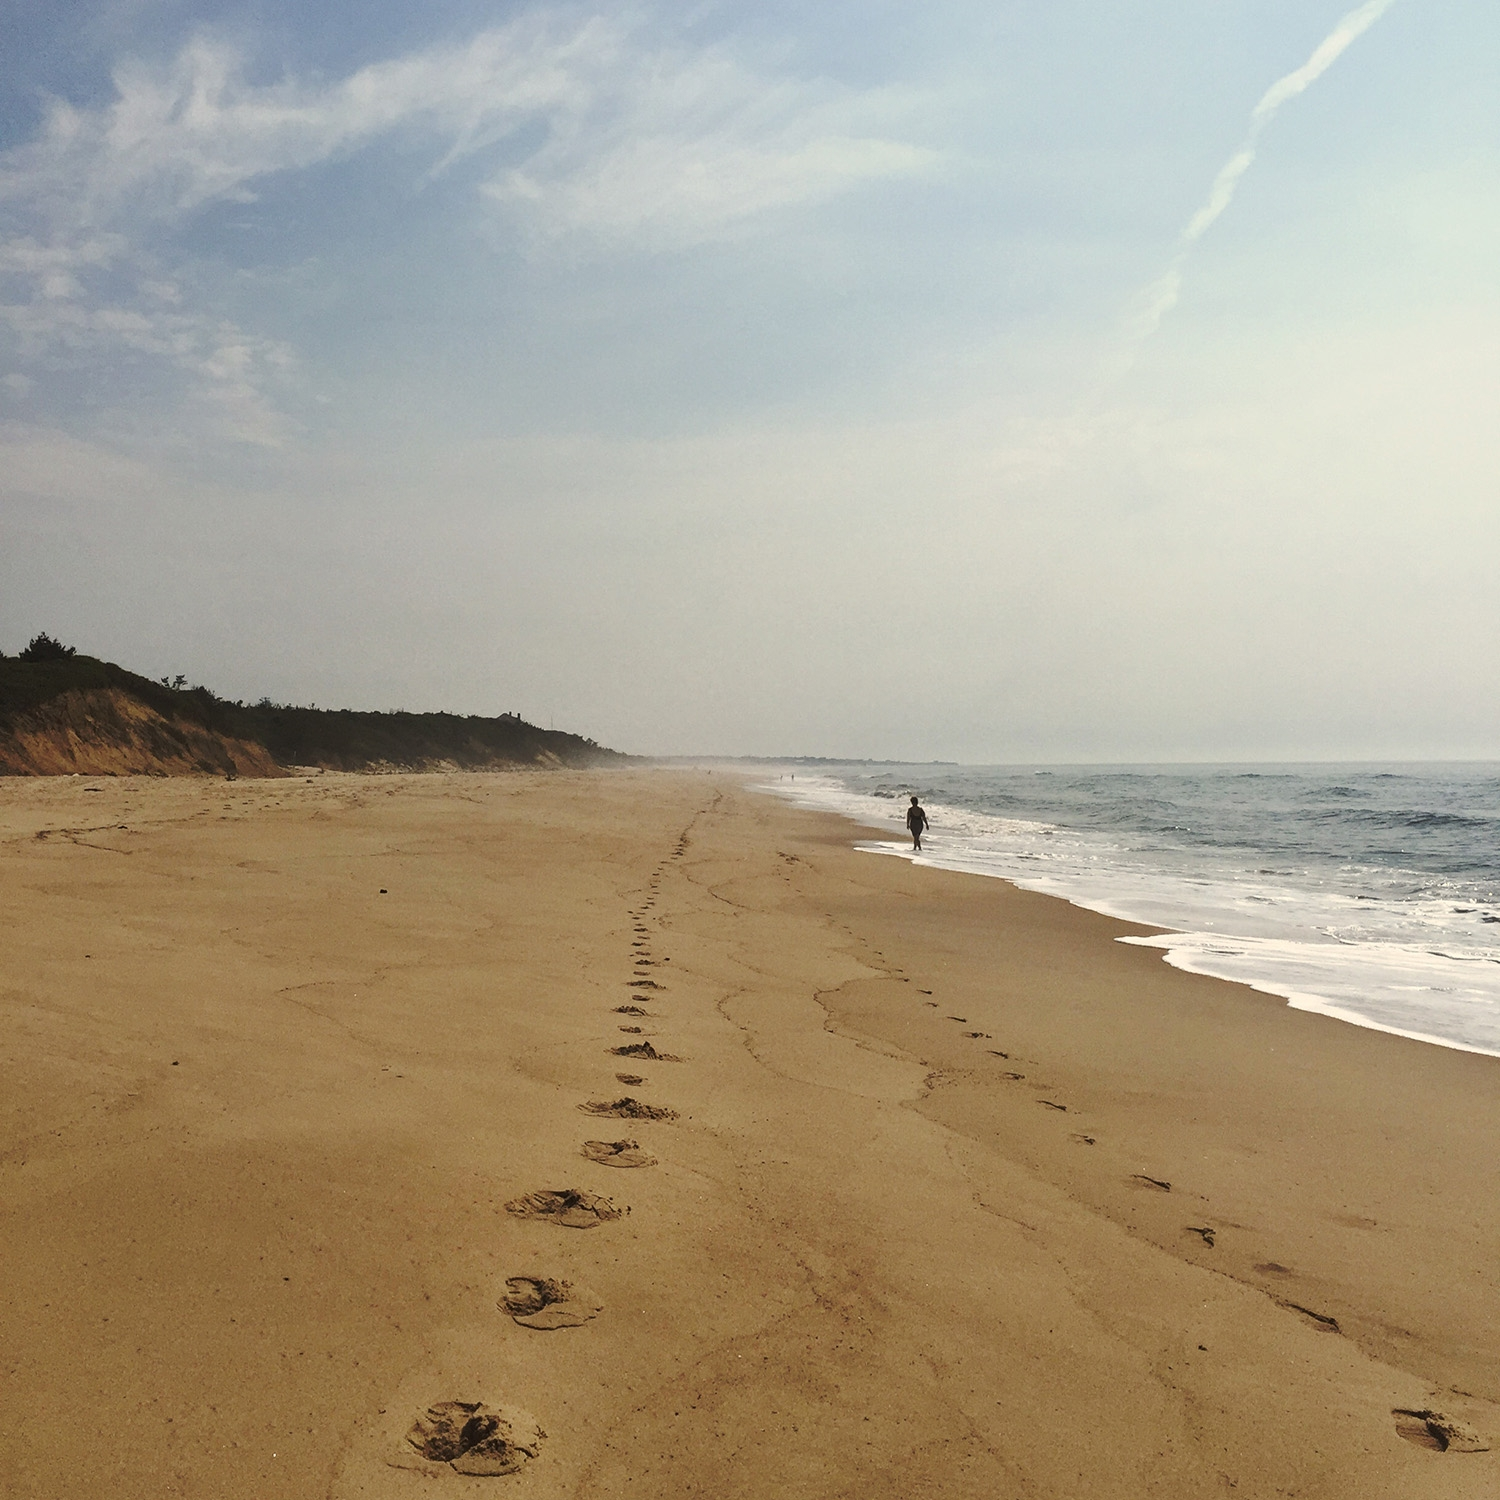 Footprints lead along the shoreline of Montauk beach and a person stands in the shallow white foam facing the horizon